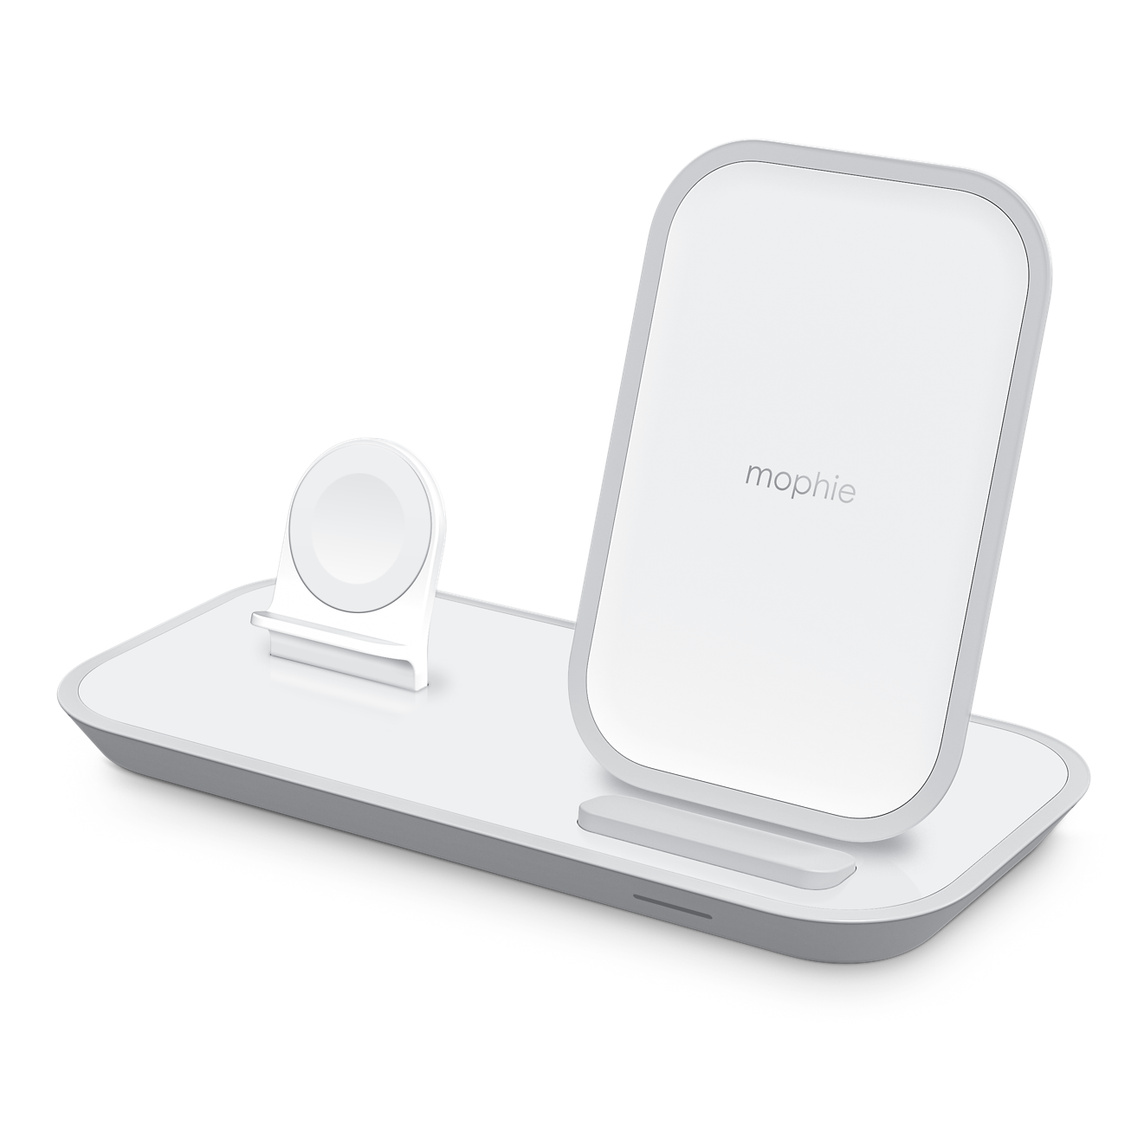 Mophie 2 In 1 Wireless Charging Stand White Apple Uk This wireless mophie smartphone charger is sleek and powerful. mophie 2 in 1 wireless charging stand